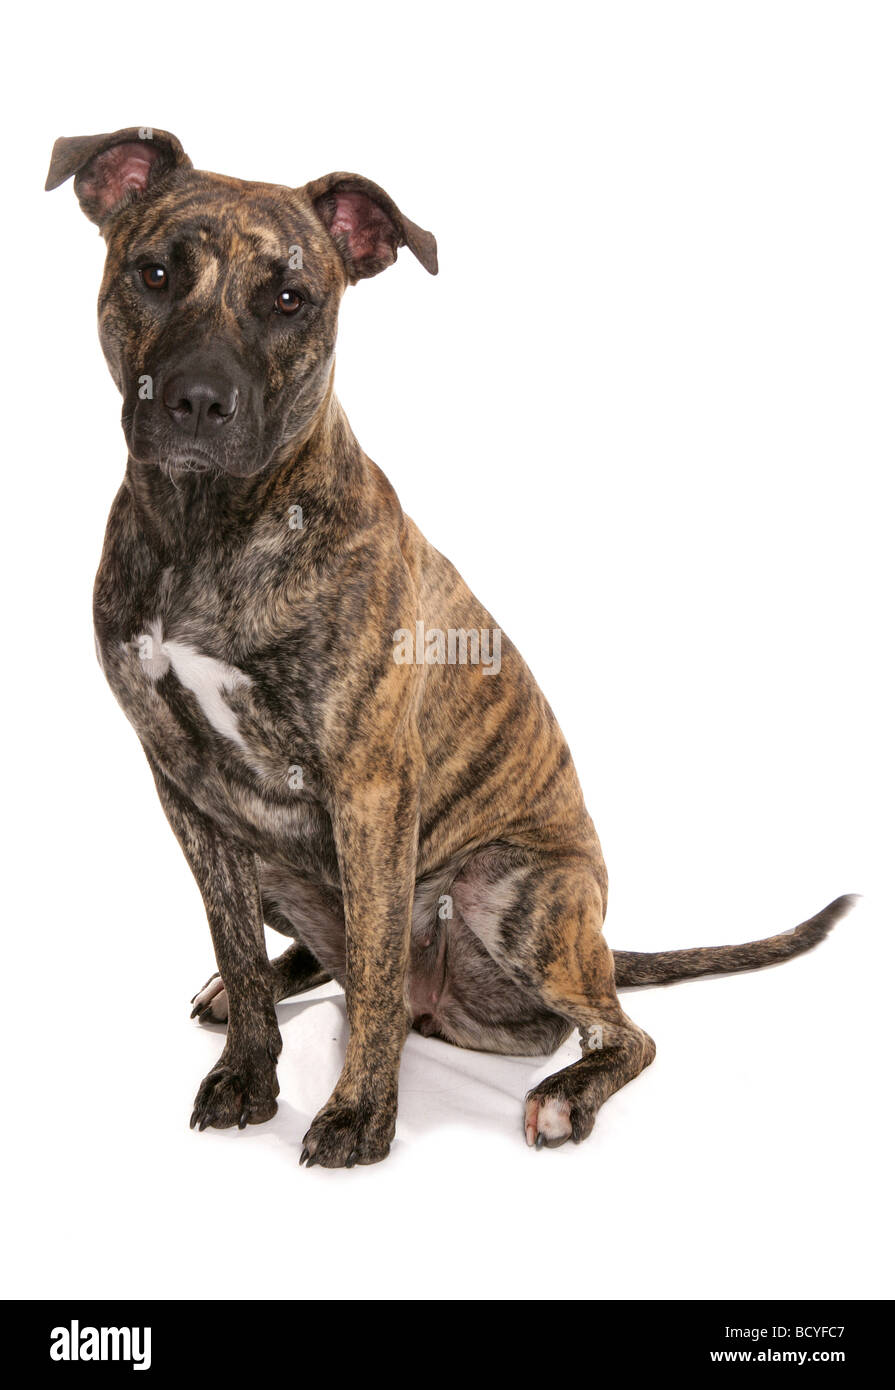 half breed dog (Staffordshire Bull Terrier) - sitting - cut out - Stock Image